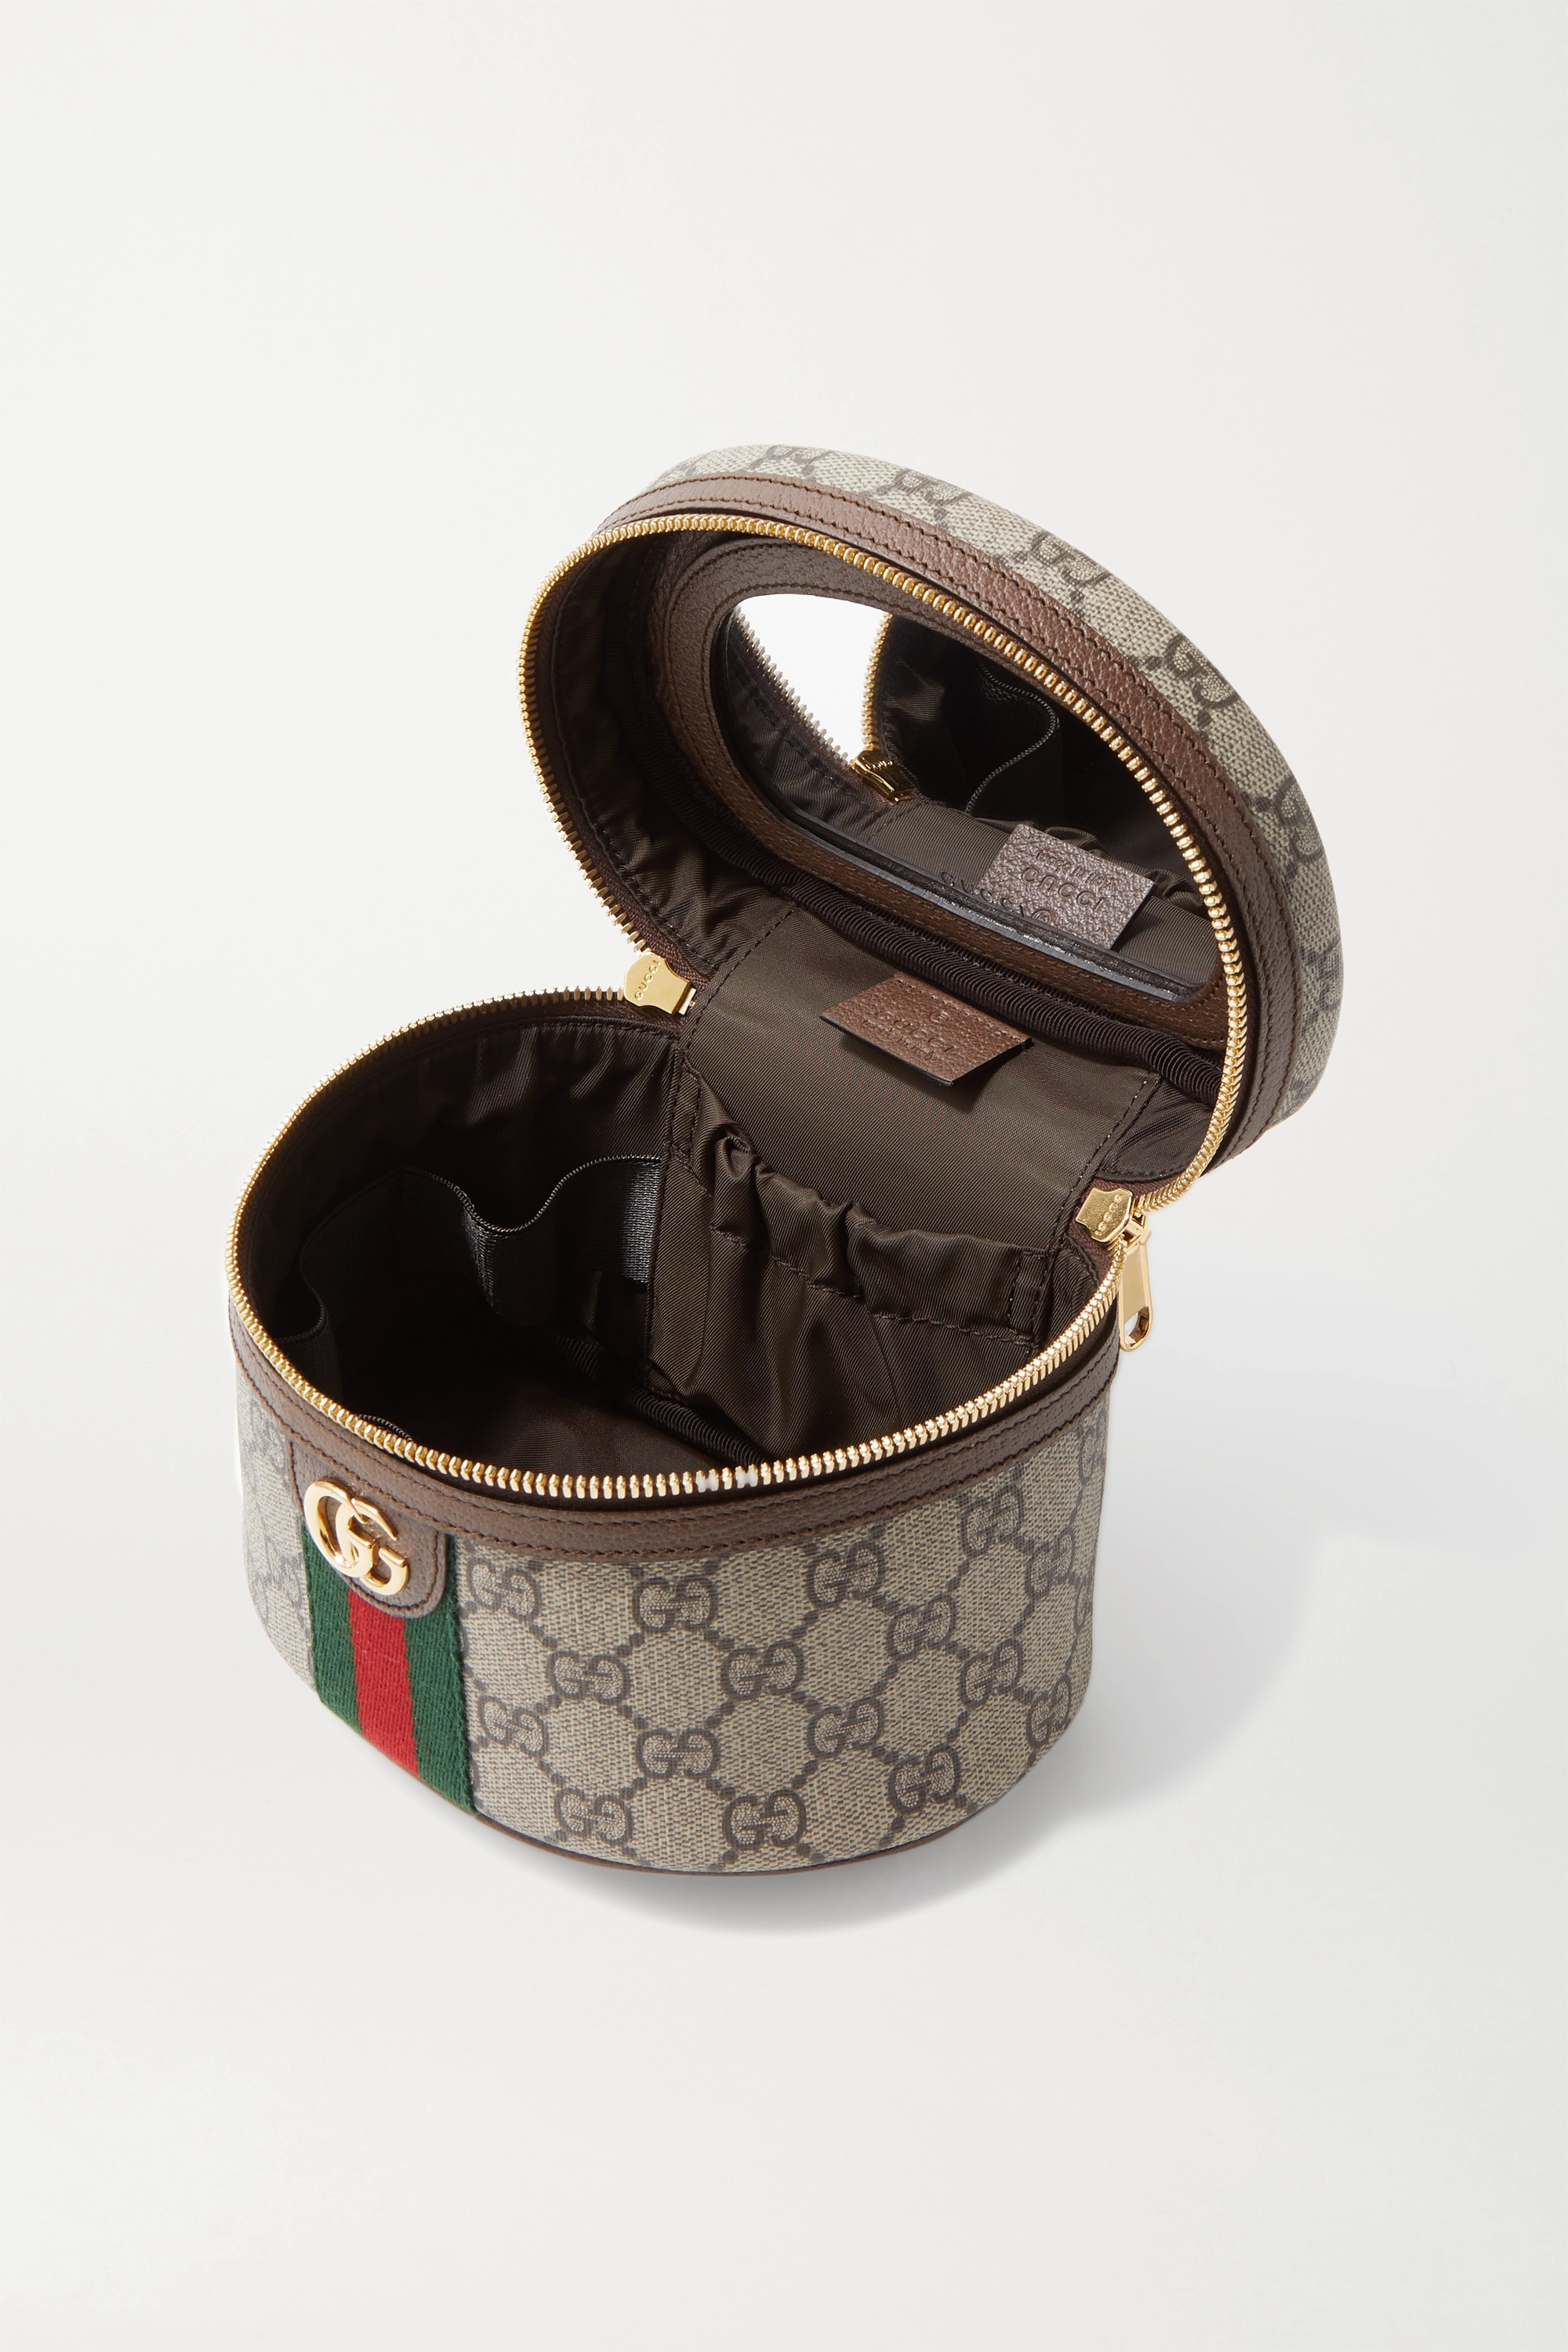 Gucci Ophidia textured leather-trimmed printed coated-canvas cosmetics case